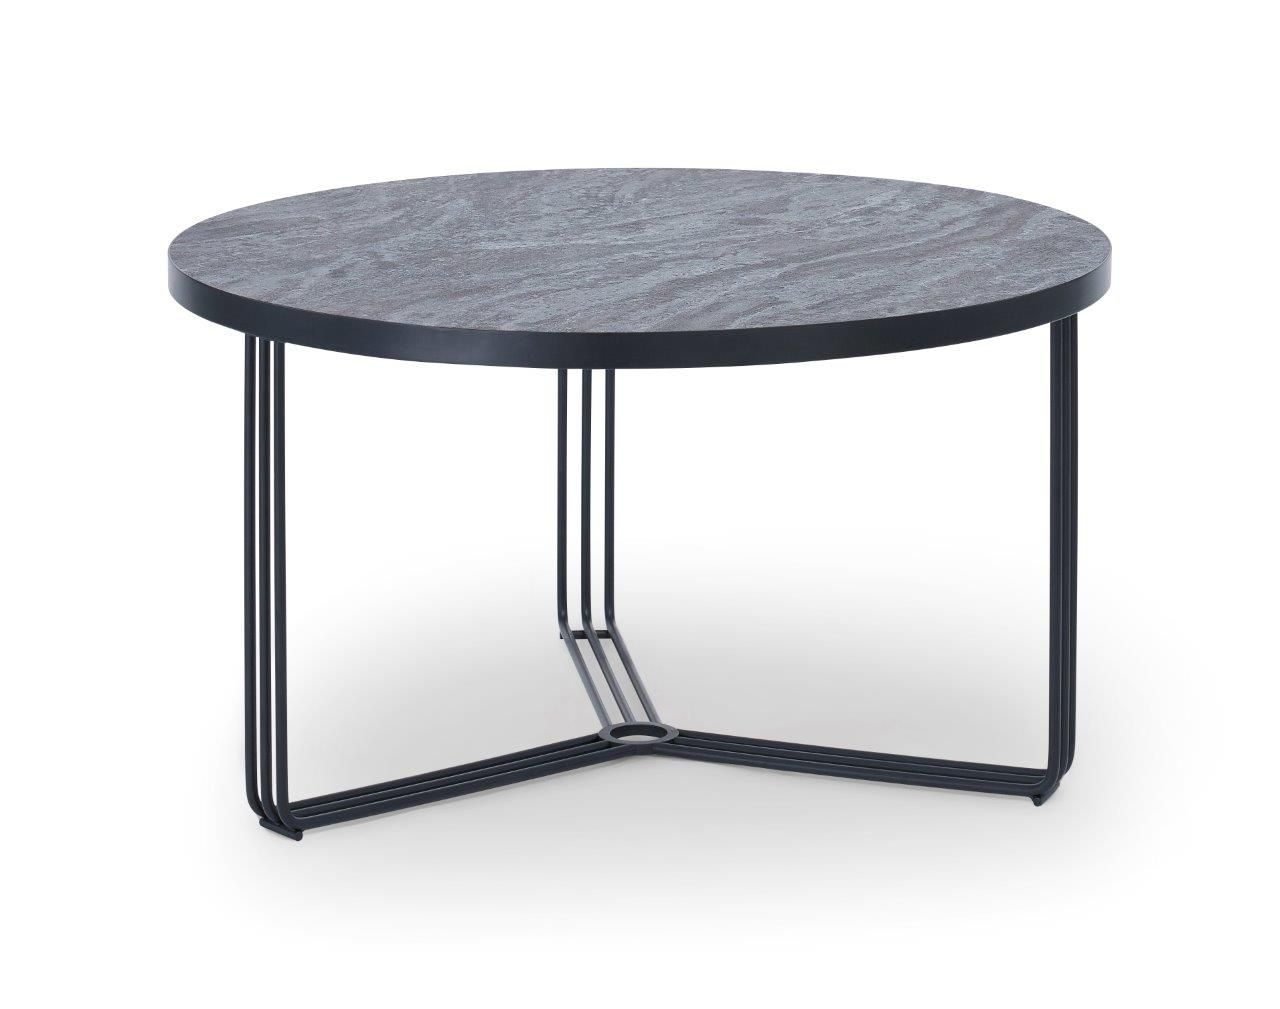 Gillmore Finn Collection Small Circular Coffee Table with Matt Black Frame